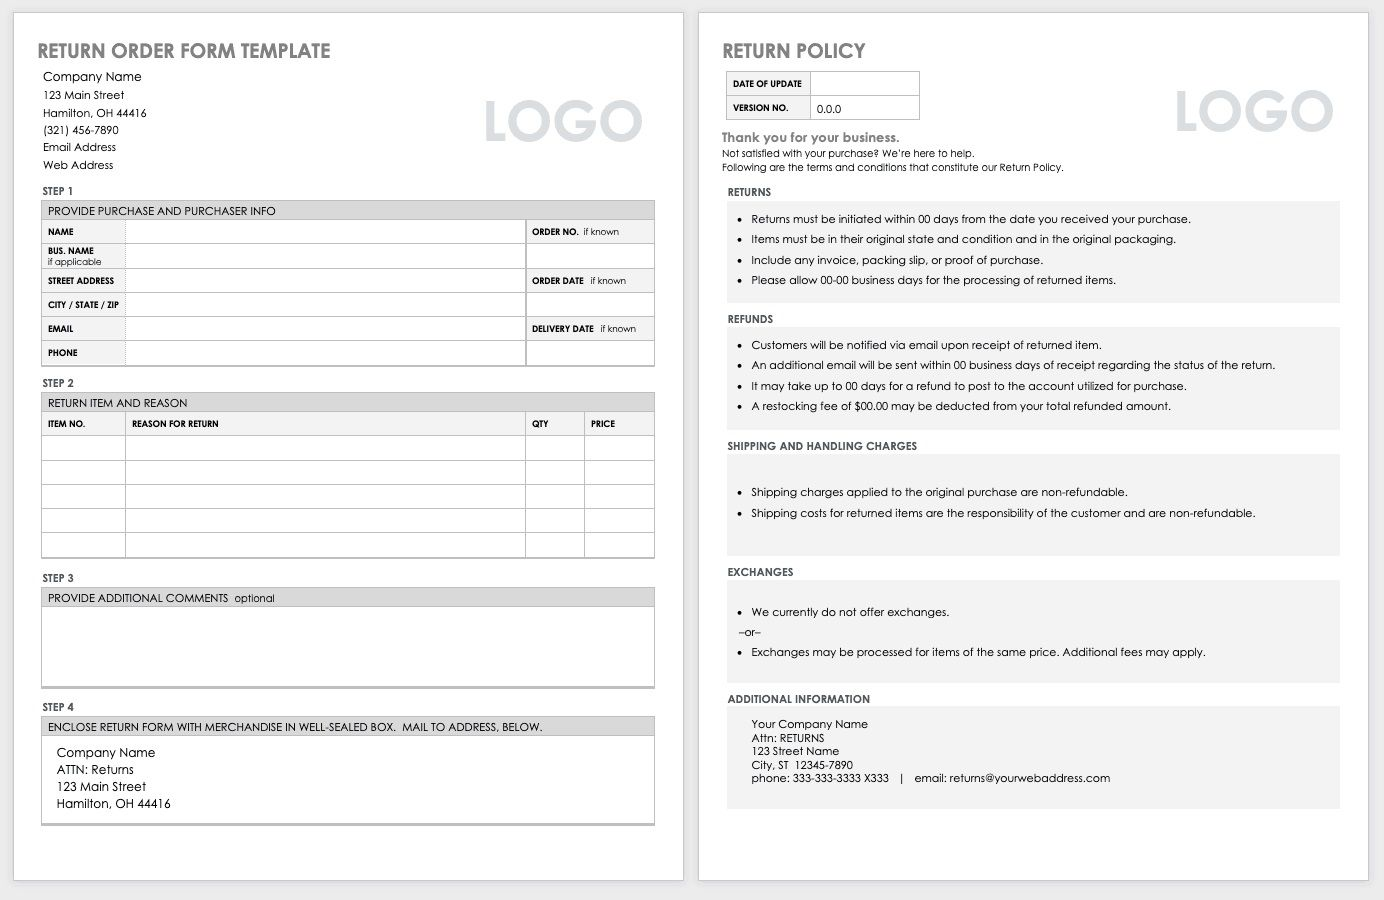 009 Formidable Construction Change Order Template Word High Definition  DocFull